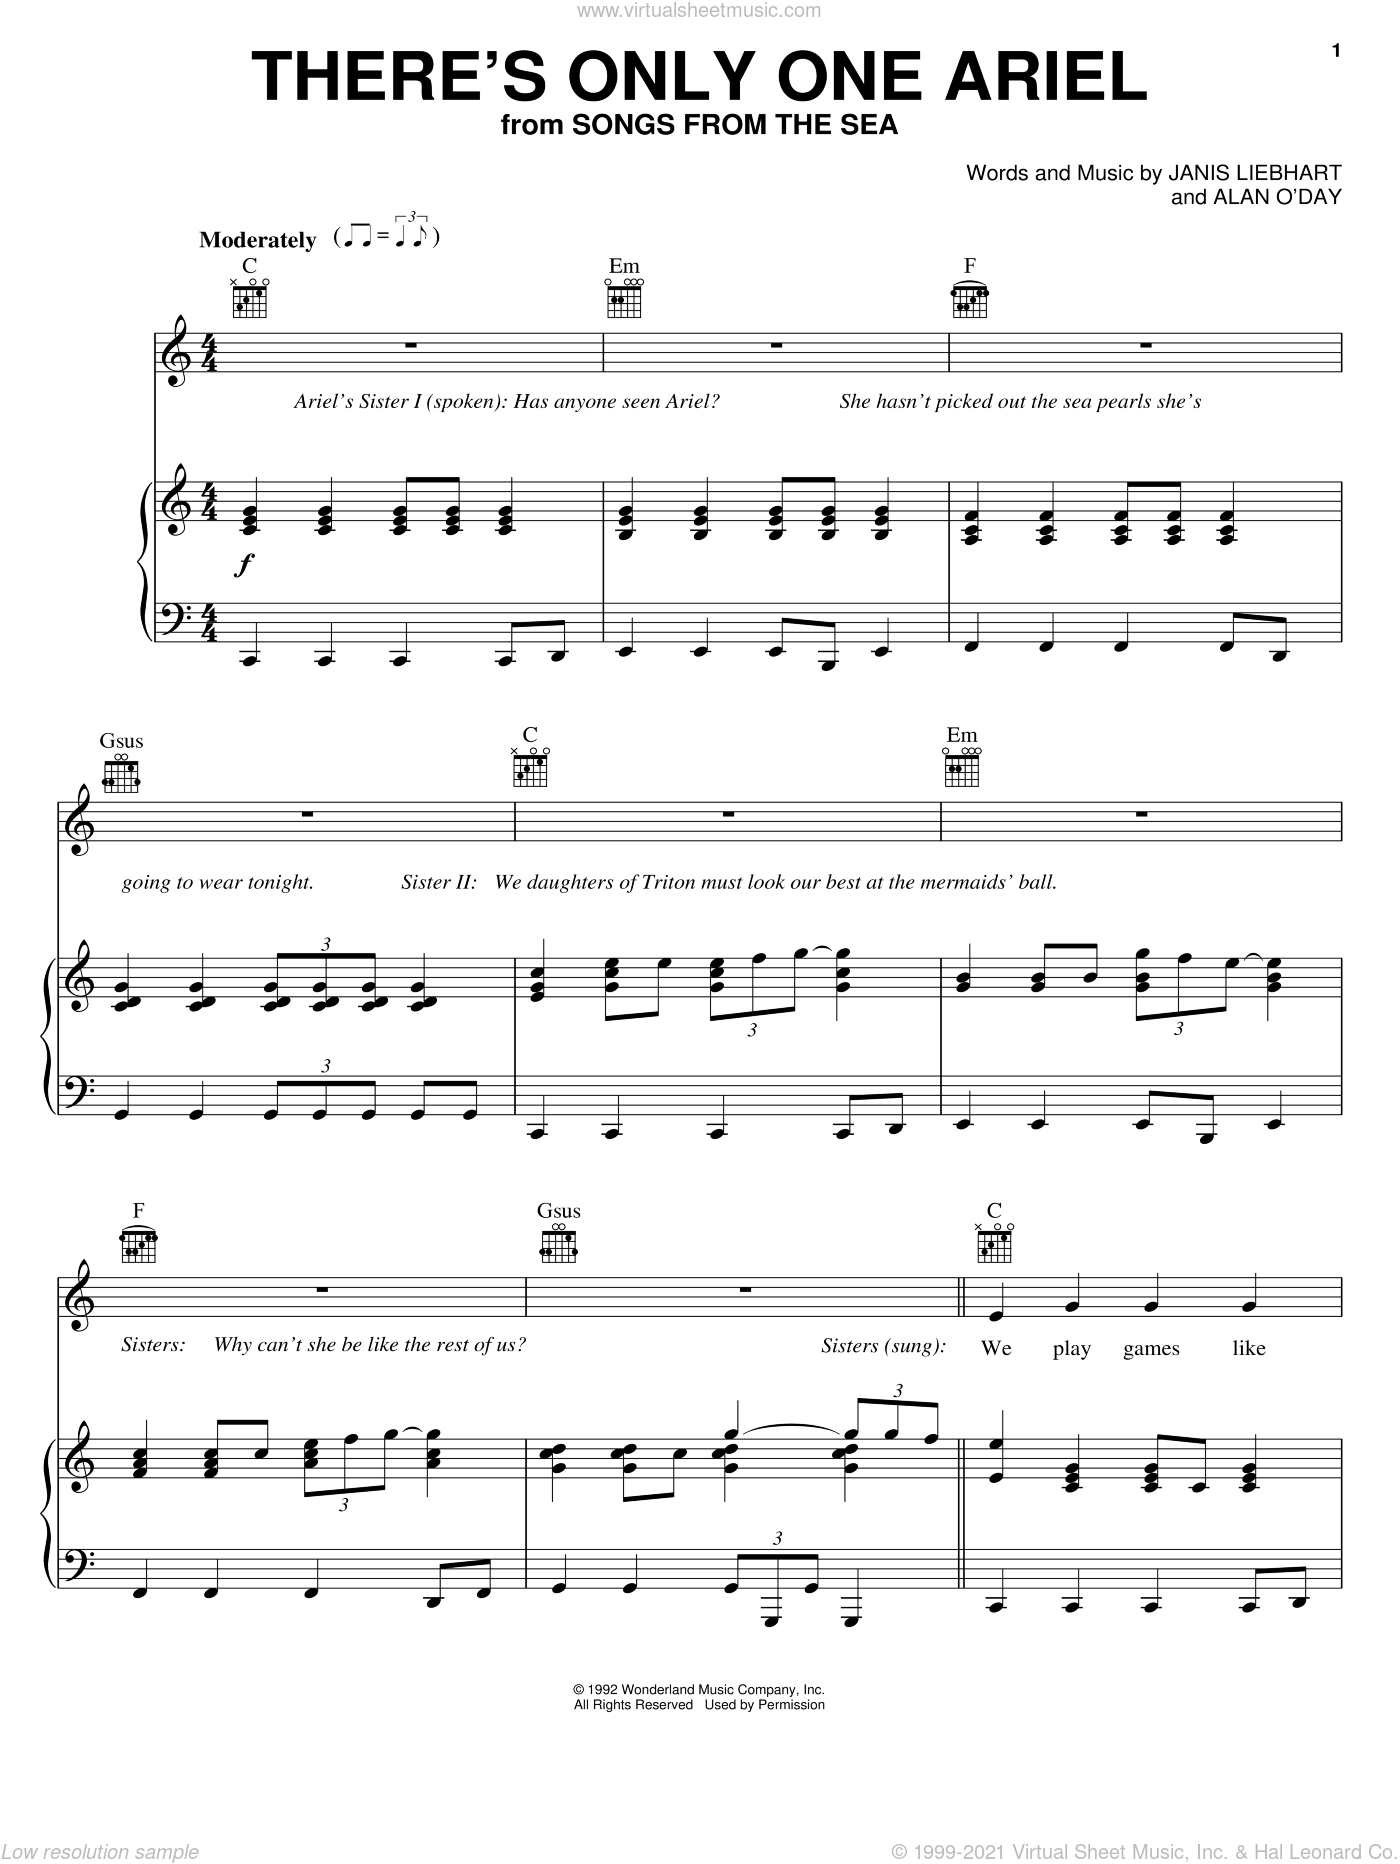 There's Only One Ariel sheet music for voice, piano or guitar by Alan O'Day and Janis Leibhart, intermediate skill level